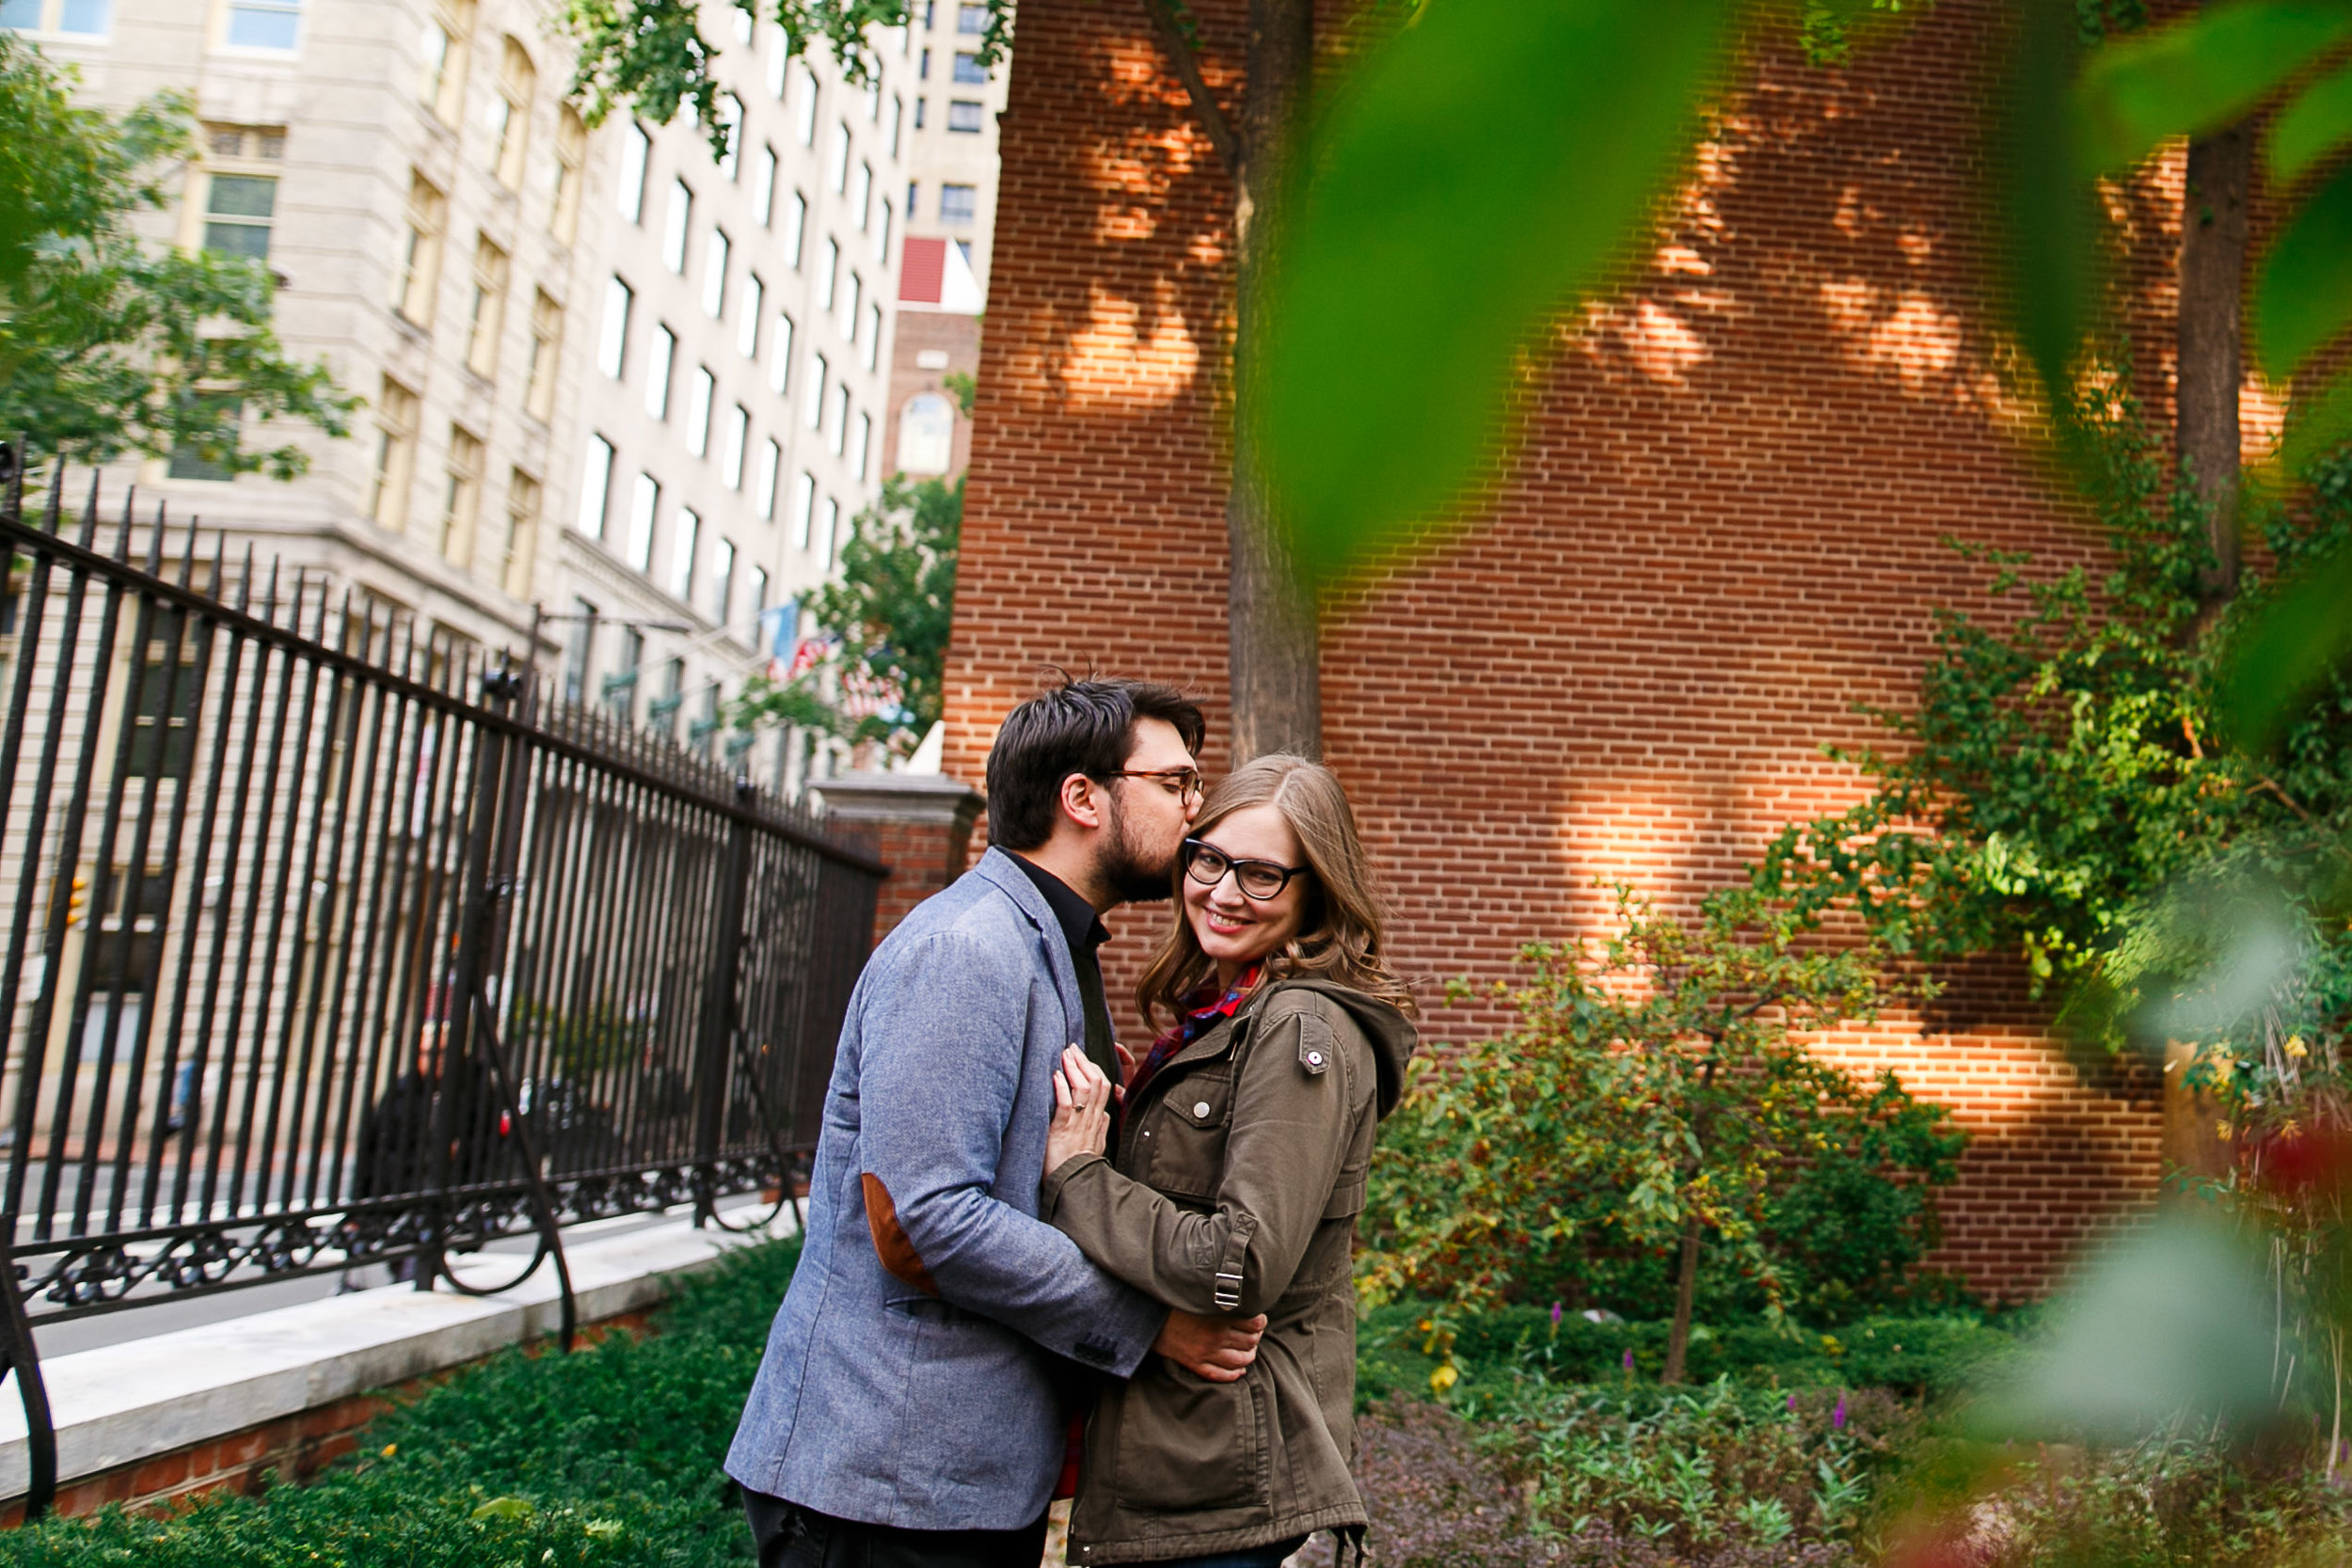 Old City Philadelphia Fall Engagement Session by Swiger Photography Ala and Roy12.jpg